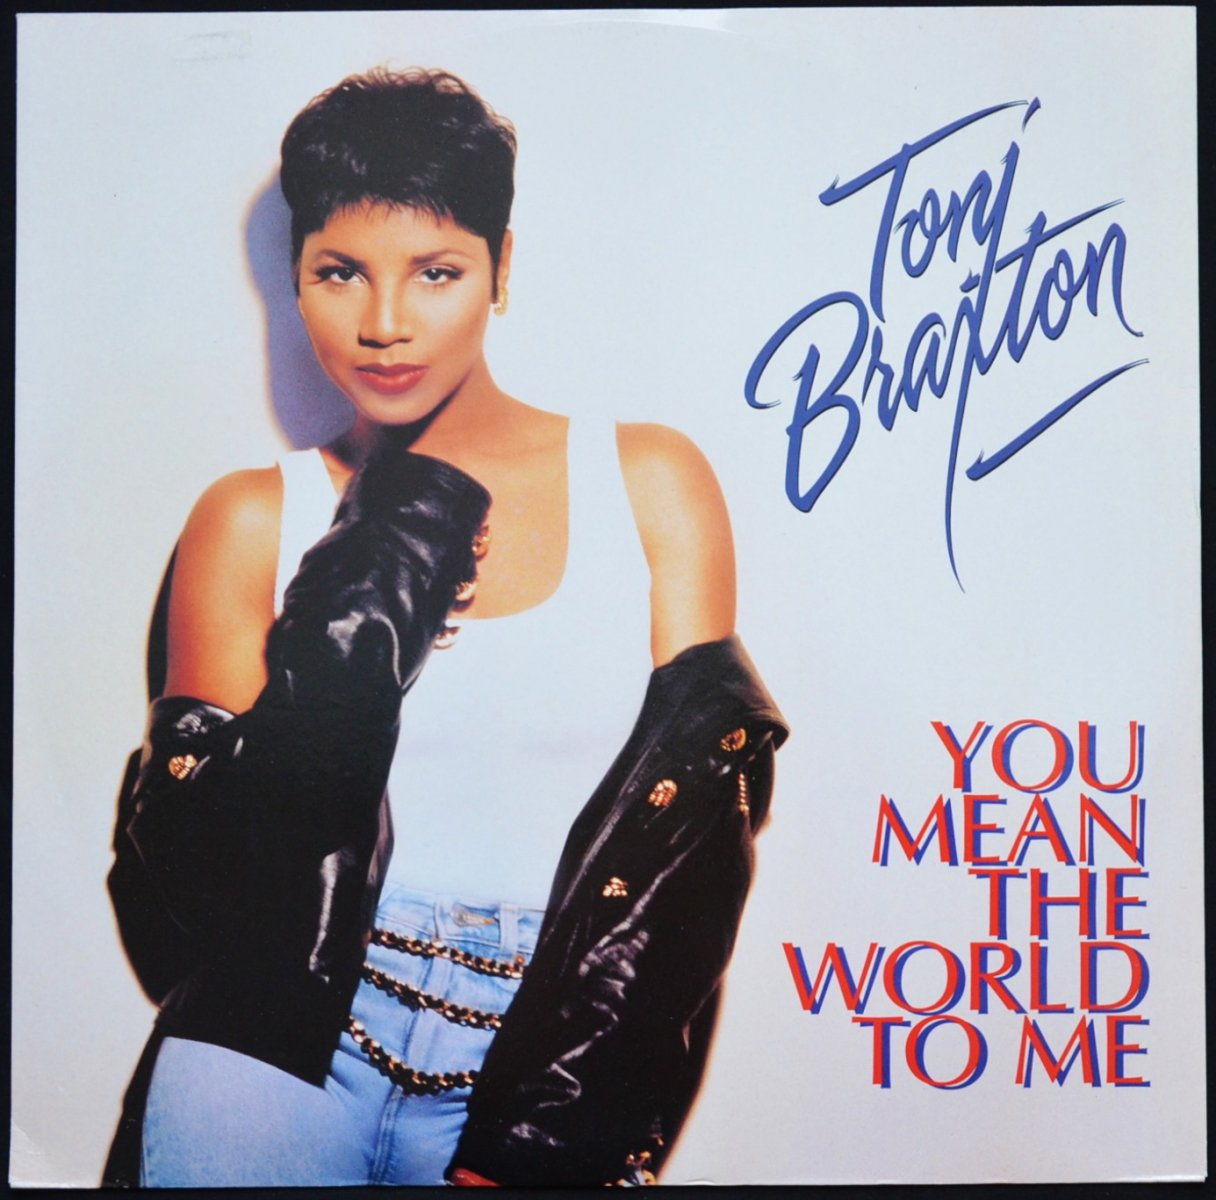 TONI BRAXTON ‎/ YOU MEAN THE WORLD TO ME / SEVEN WHOLE DAYS (GHETTO VIBE) (12